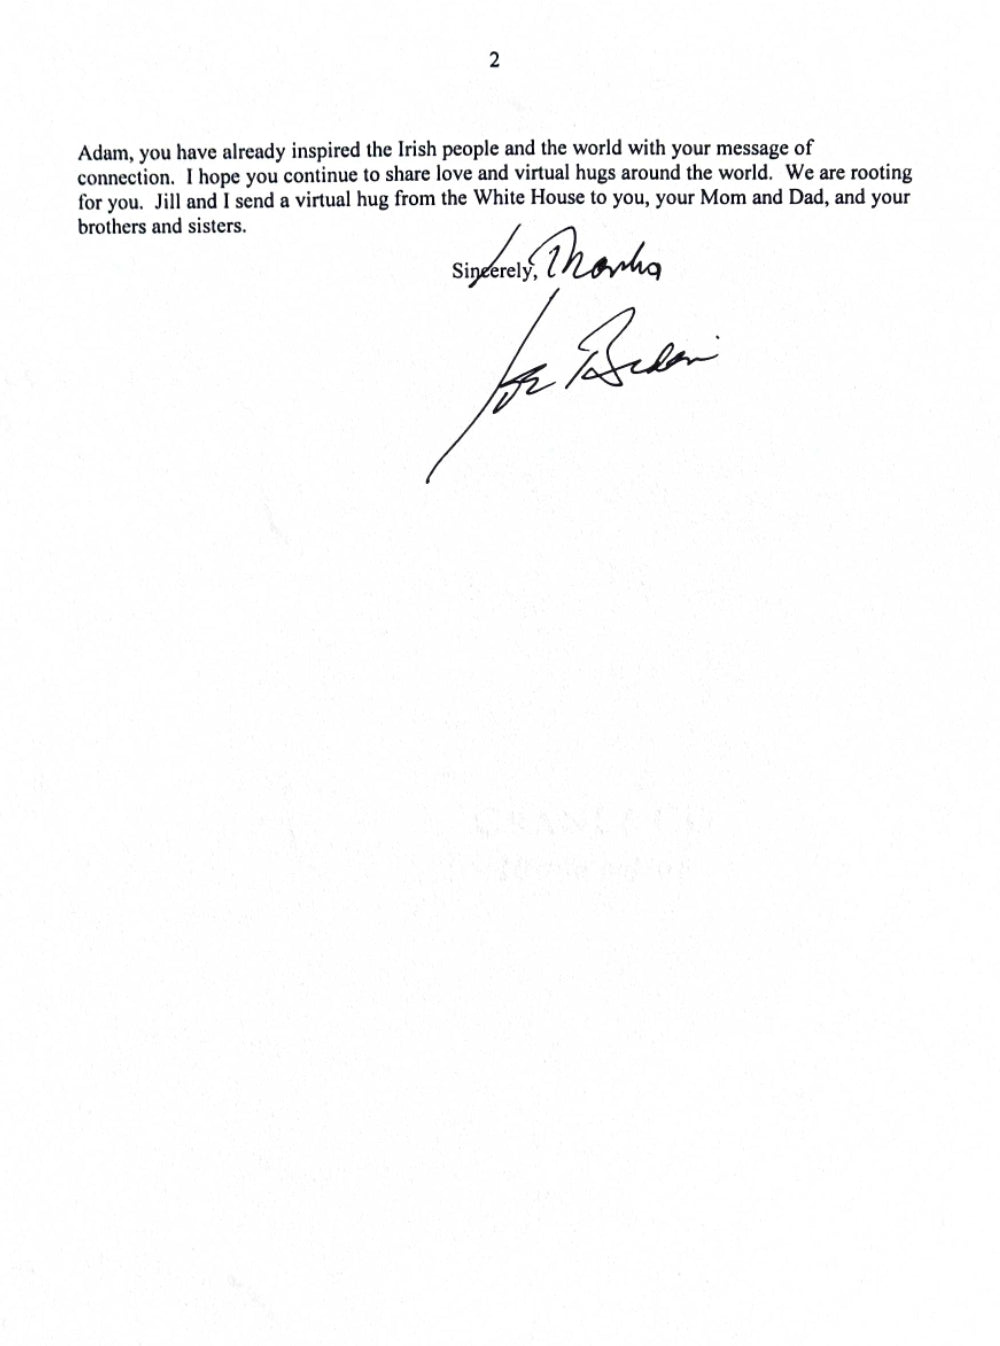 Letter from White House to Adam page two